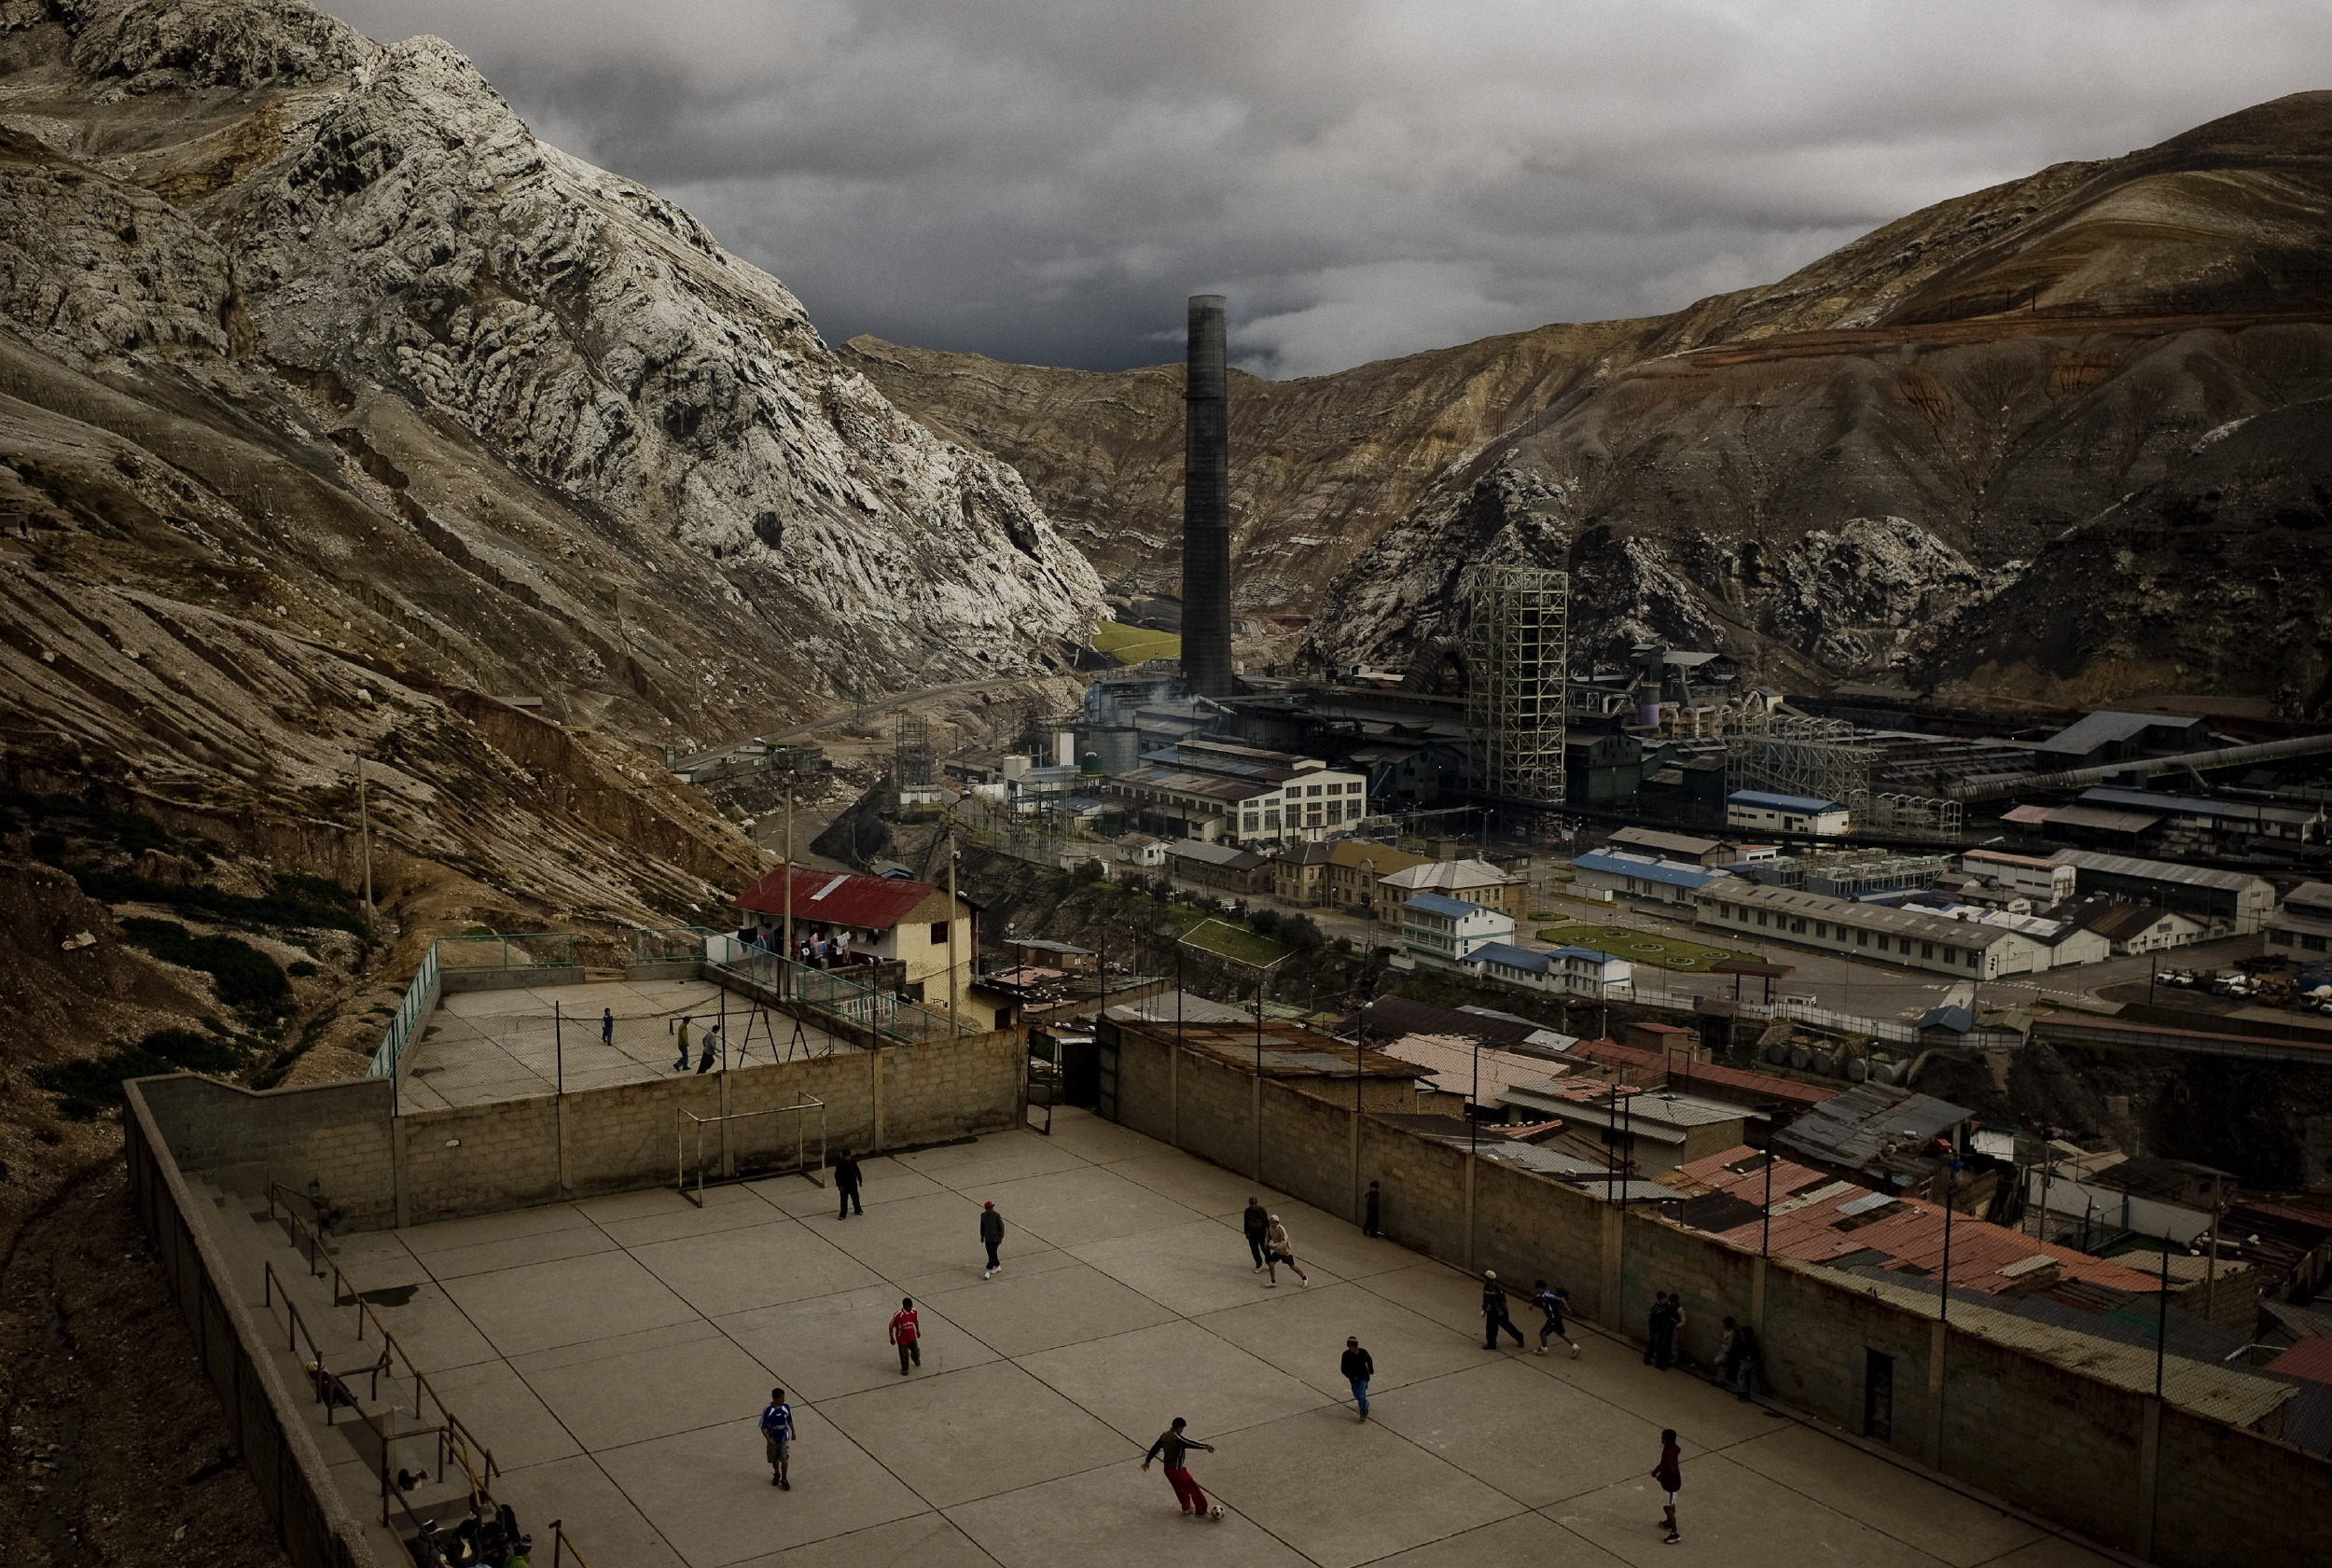 Youth play soccer in La Oroya next to the American-owned smelter Doe Run Peru. This photo was taken in April 10, 2009, when production was almost completelly suspended due to an allegedly financial crisis in the company, now it is still closed. The company claims that it was not able to carry out its environmental program in violation of its agreement with the goverment, arging economic reasons, but for years it was operating in defiant of enviromental regulations, in a city where many children have tested for high lead levels in their blood due to smelter pollution.